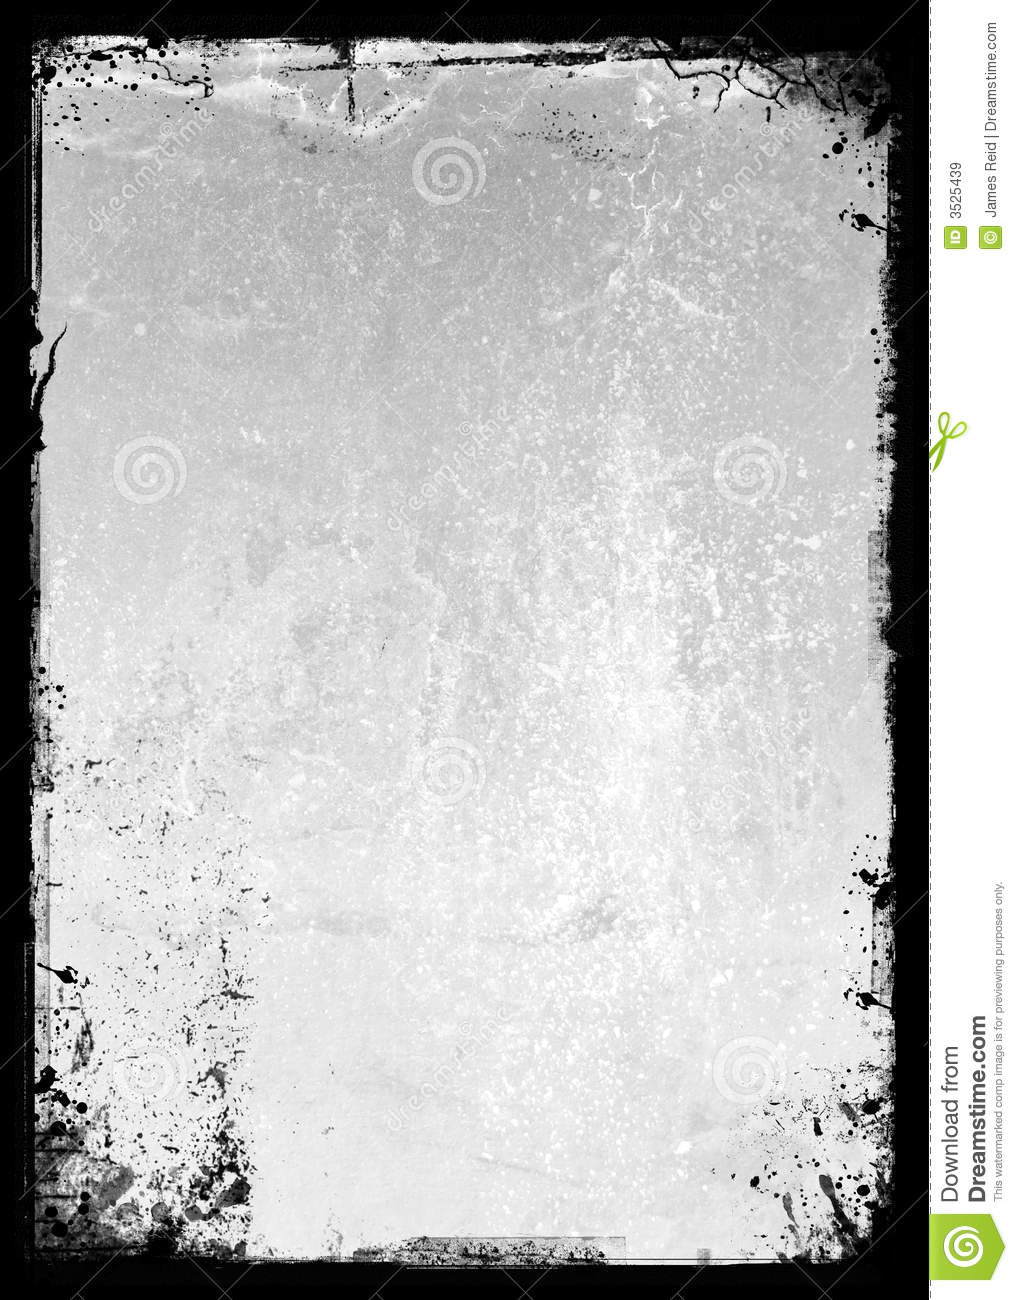 Hi res splatered concrete background created in Photoshop CS3. 300dpi.